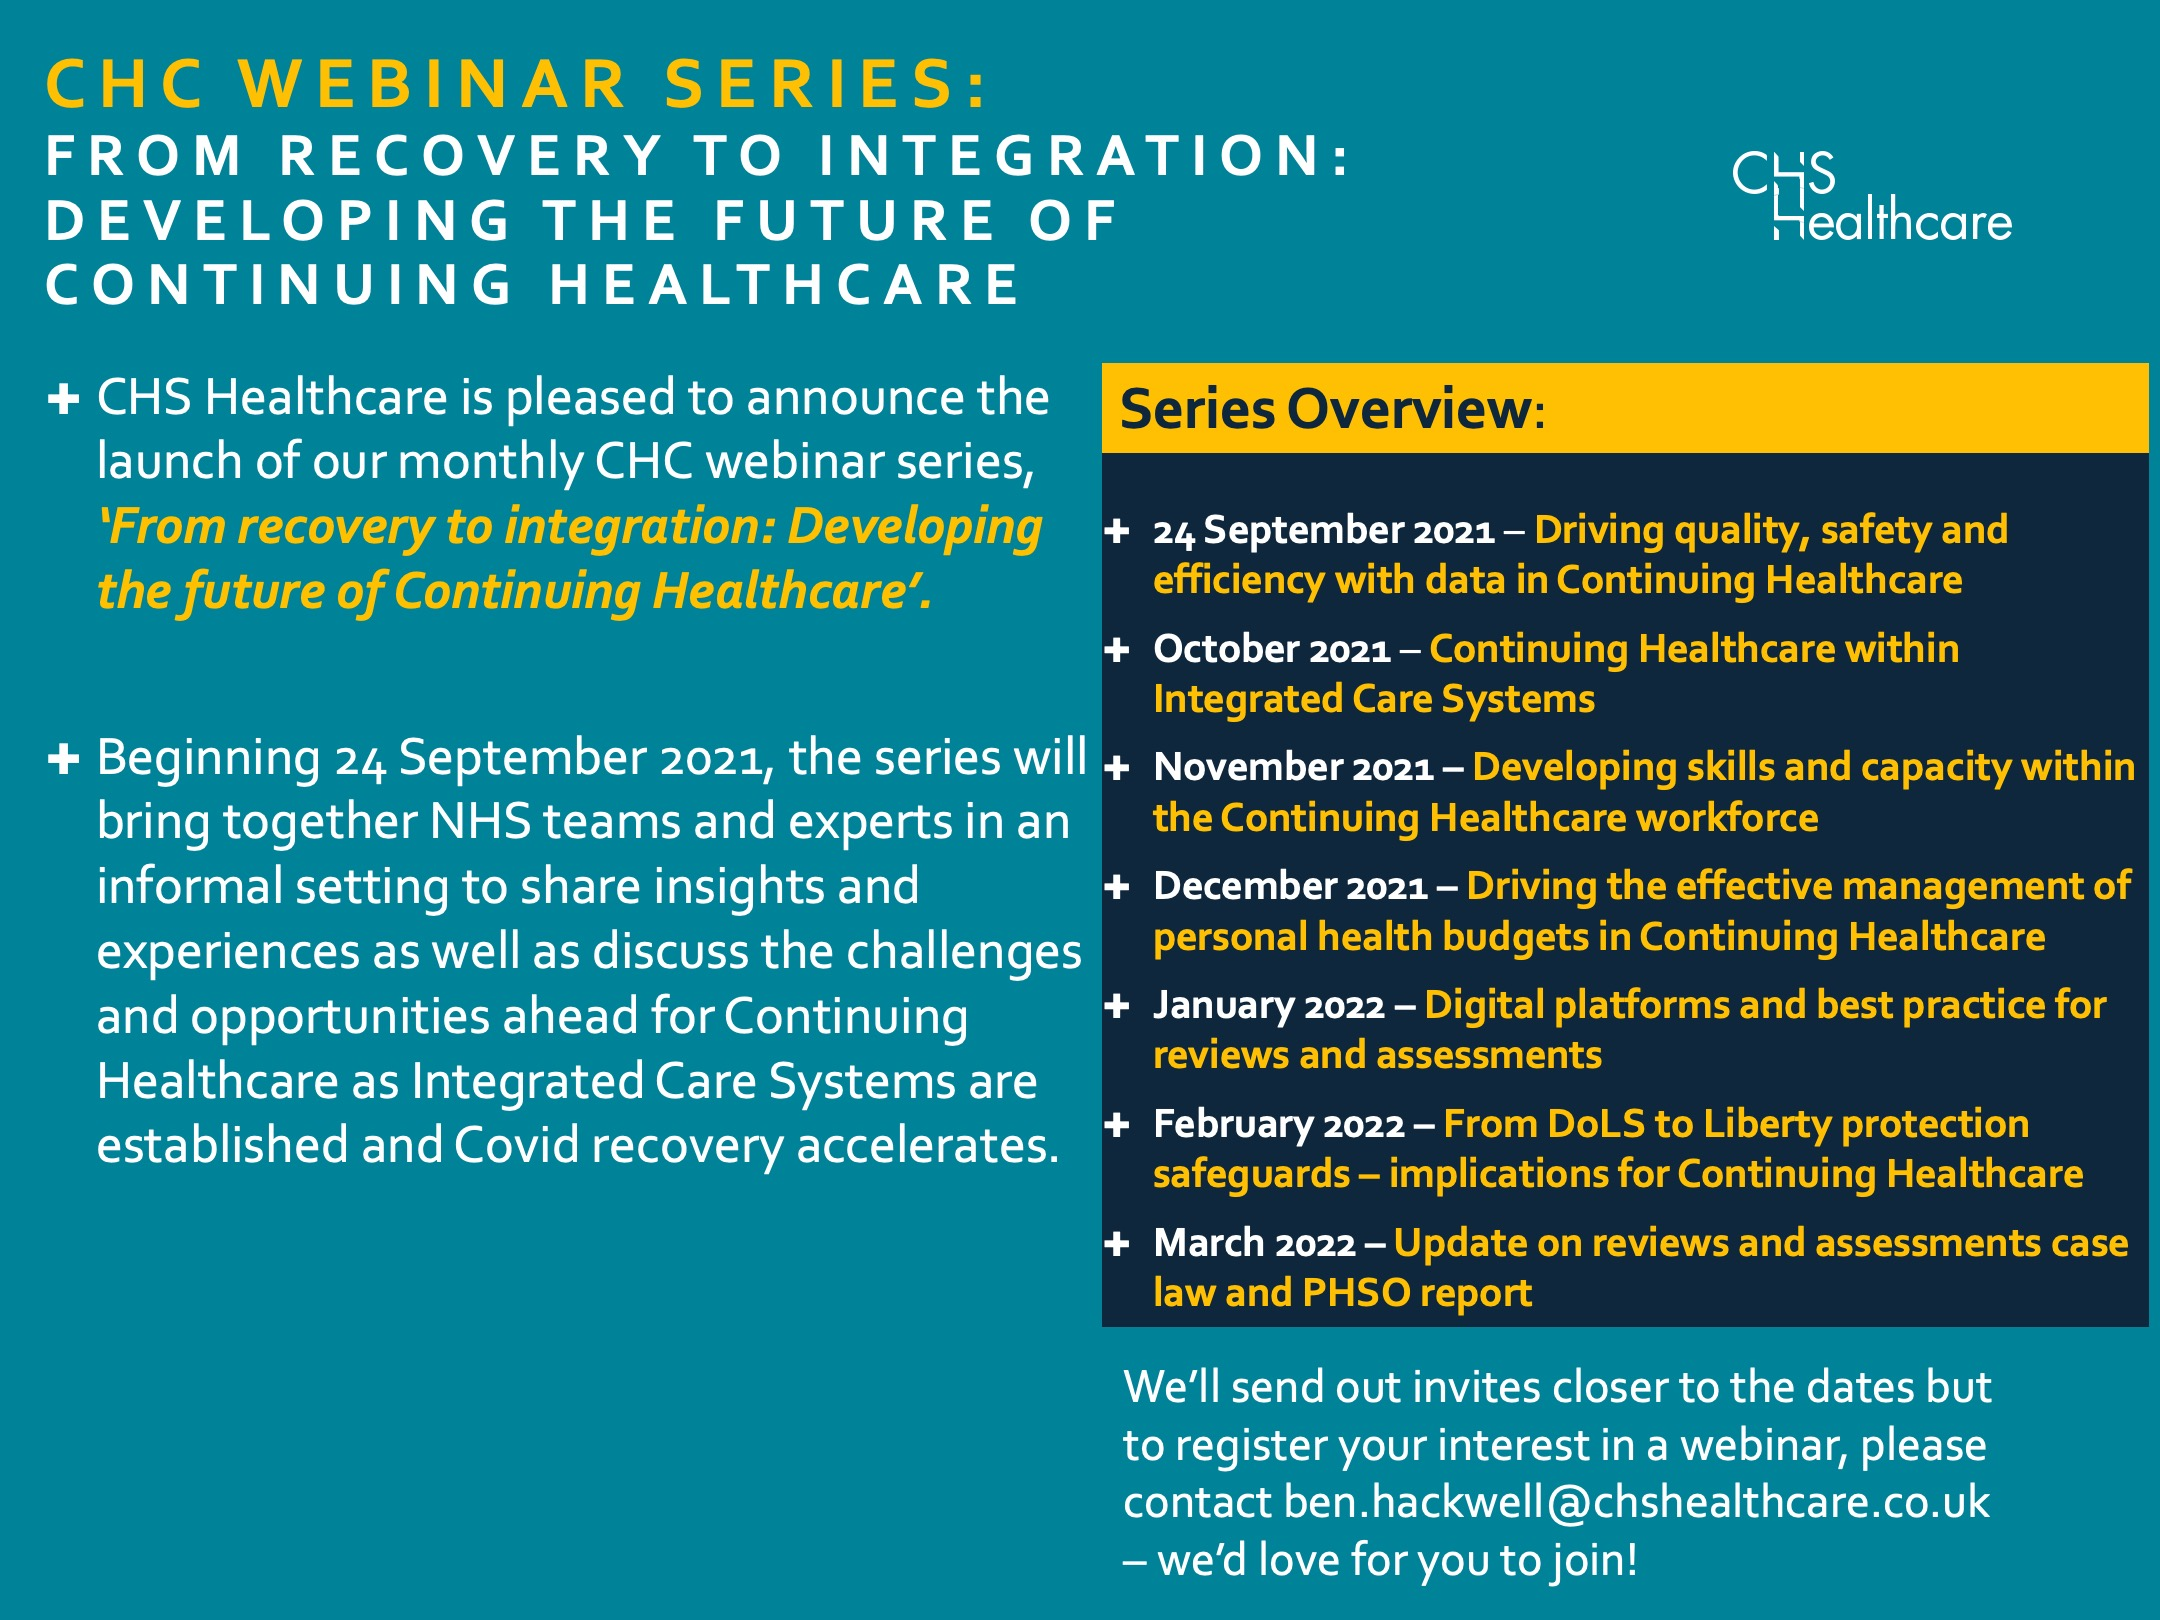 Continuing Healthcare Webinar Series: 'From recovery to integration: Developing the future of Continuing Healthcare'